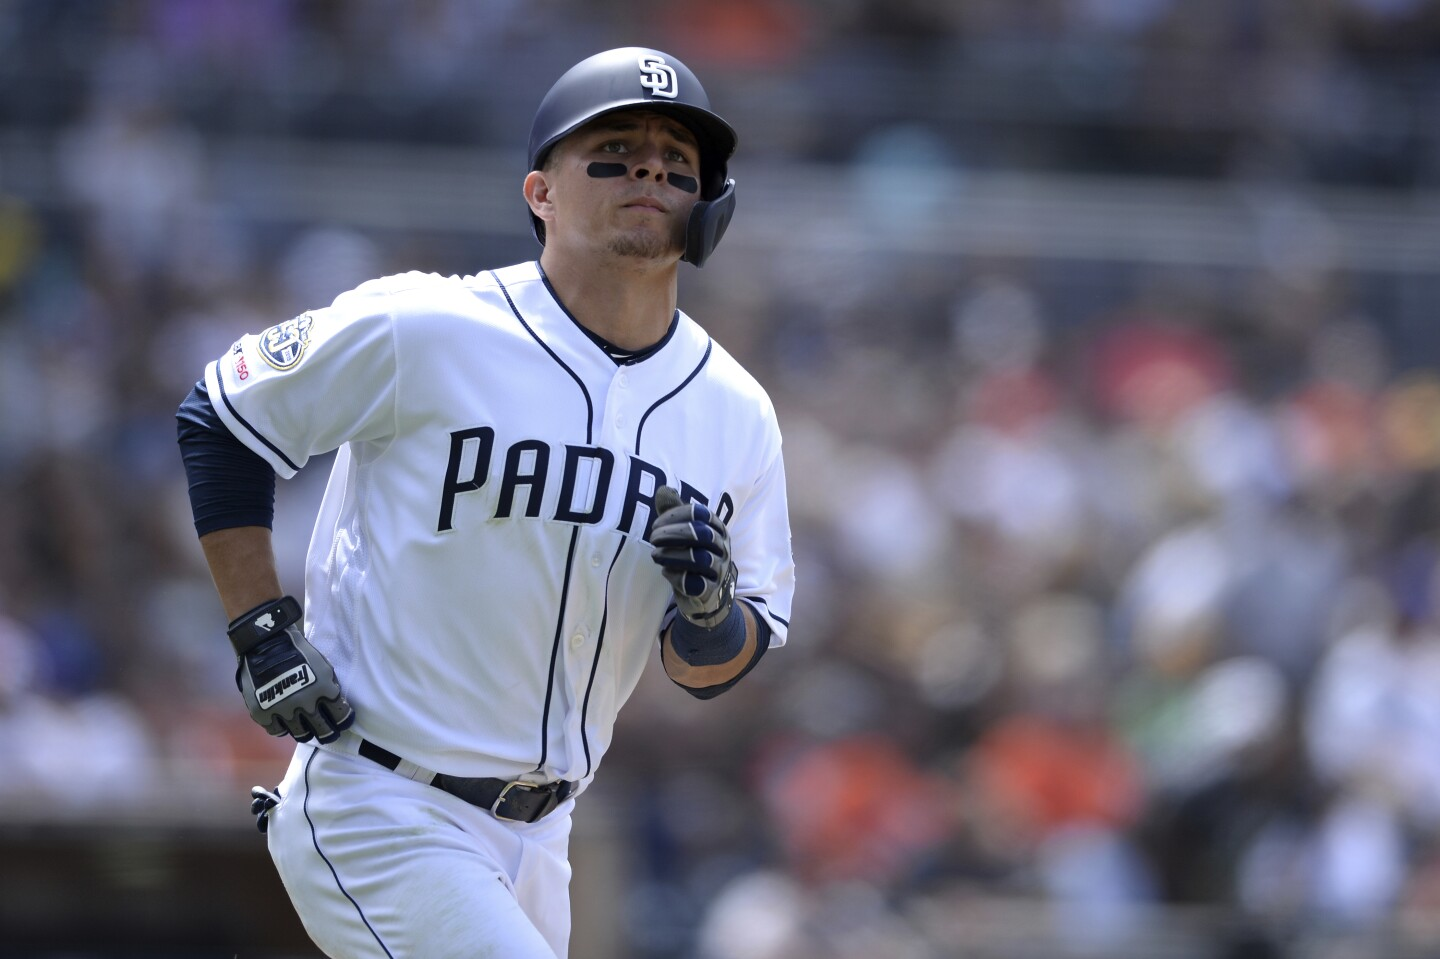 San Diego Padres' Luis Urias looks on as he runs to first base during the sixth inning of a baseball game against the Baltimore Orioles Tuesday, July 30, 2019, in San Diego. (AP Photo/Orlando Ramirez)